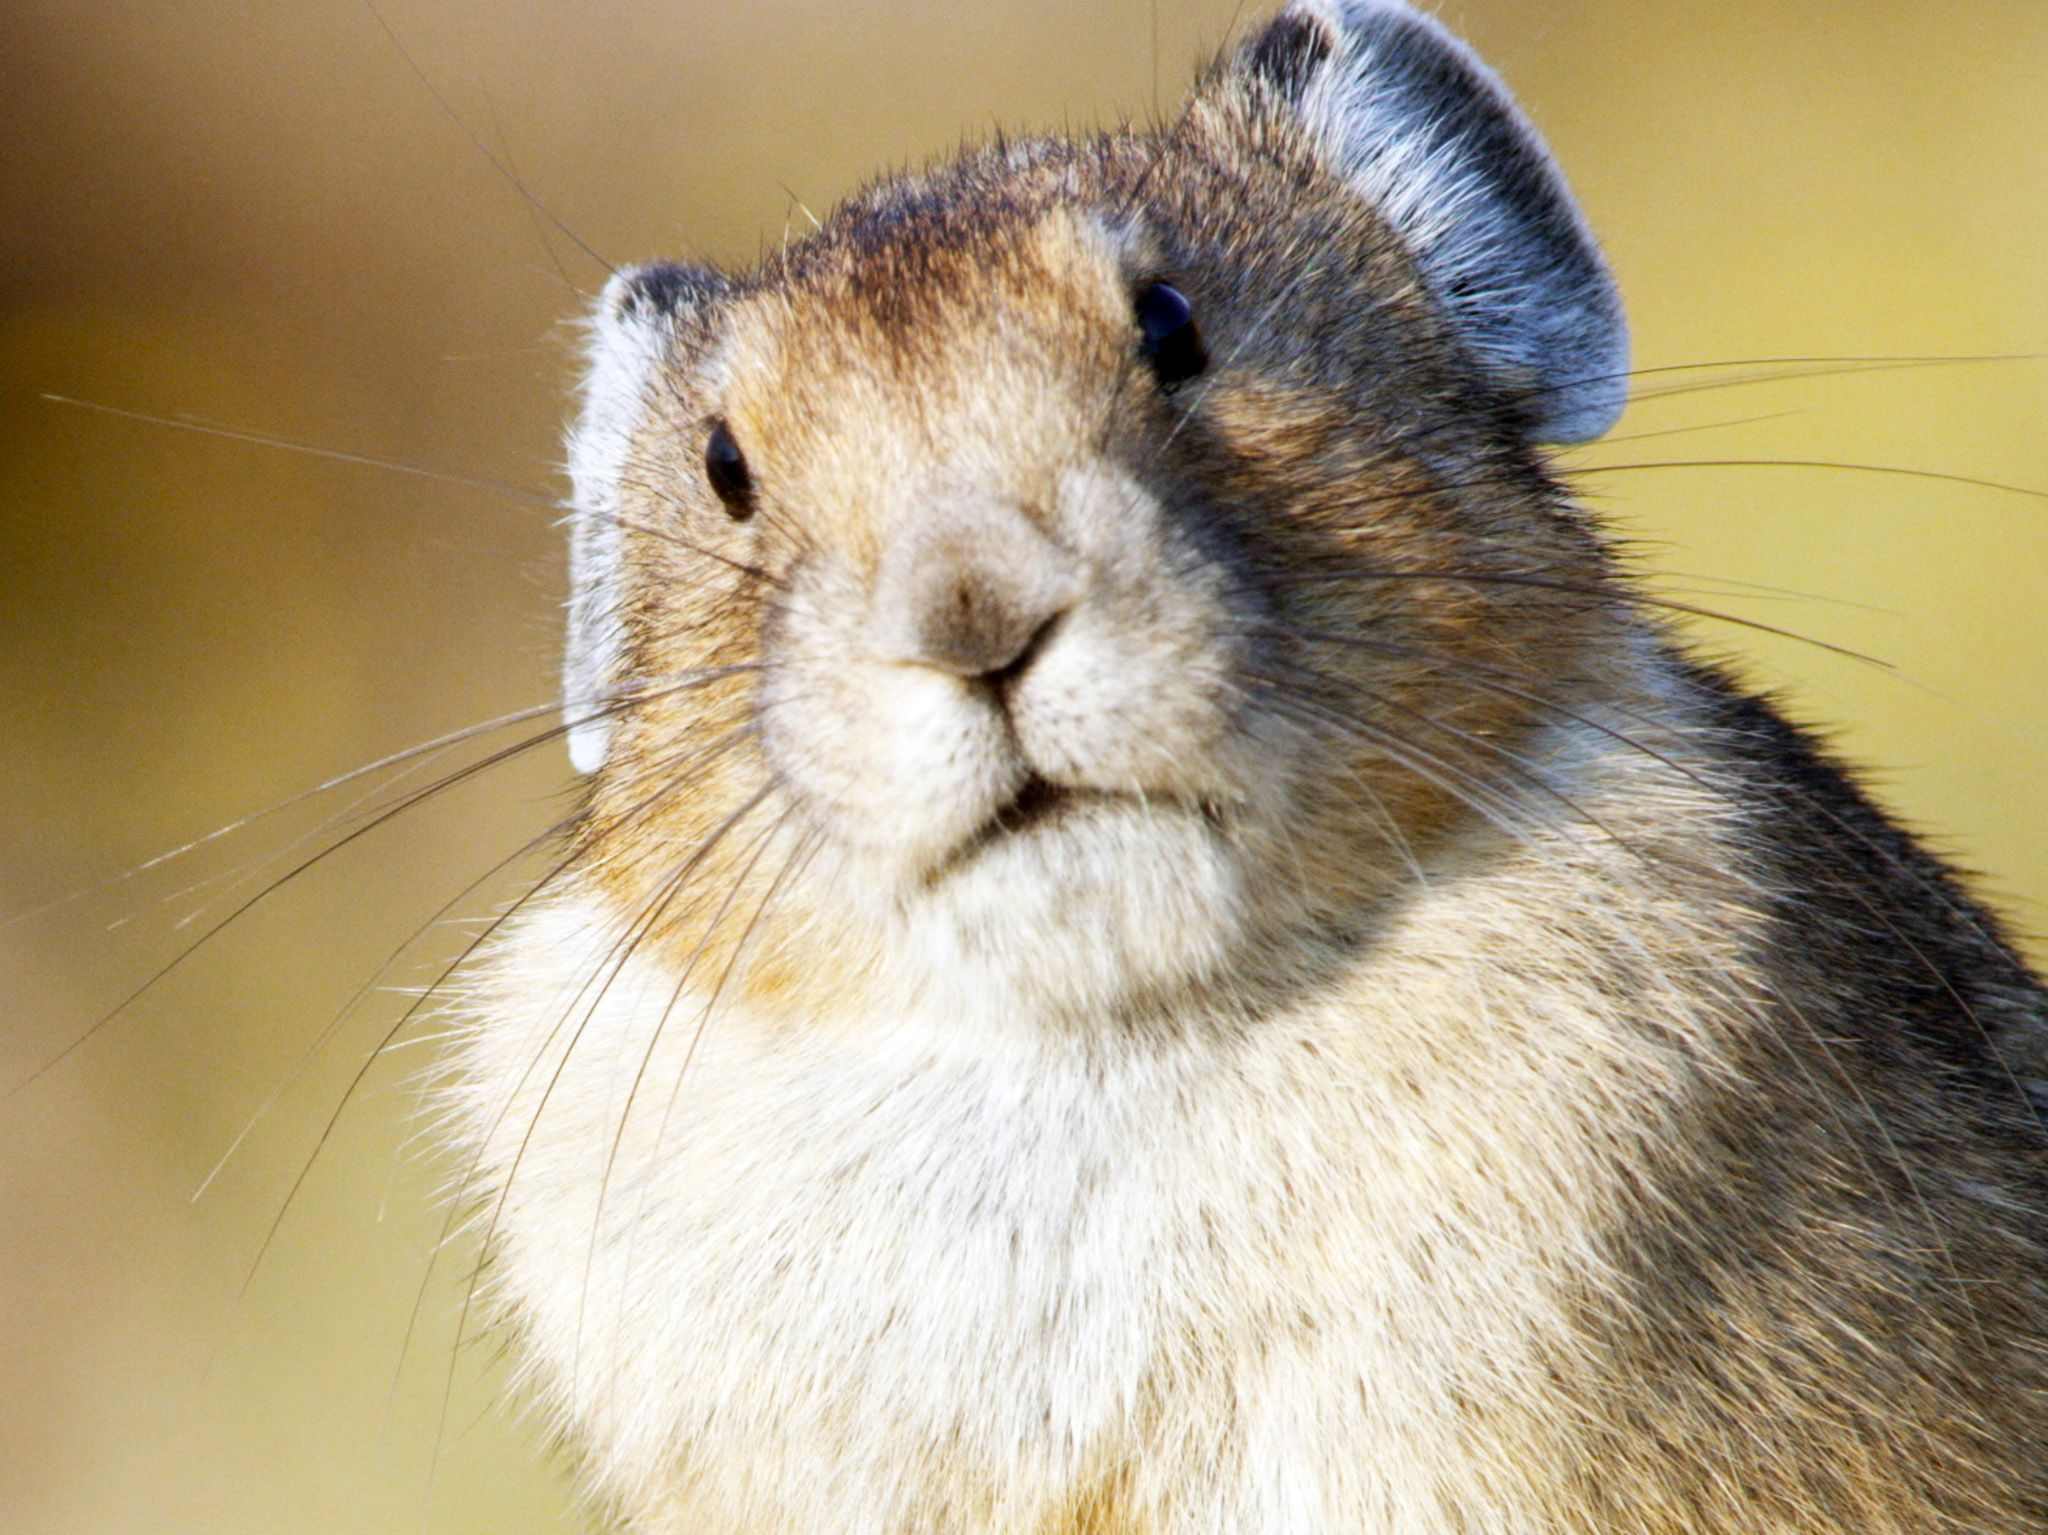 Glacier National Park, MT:  An American Pika looking at the camera. This image is from America... [Photo of the day - June 2018]